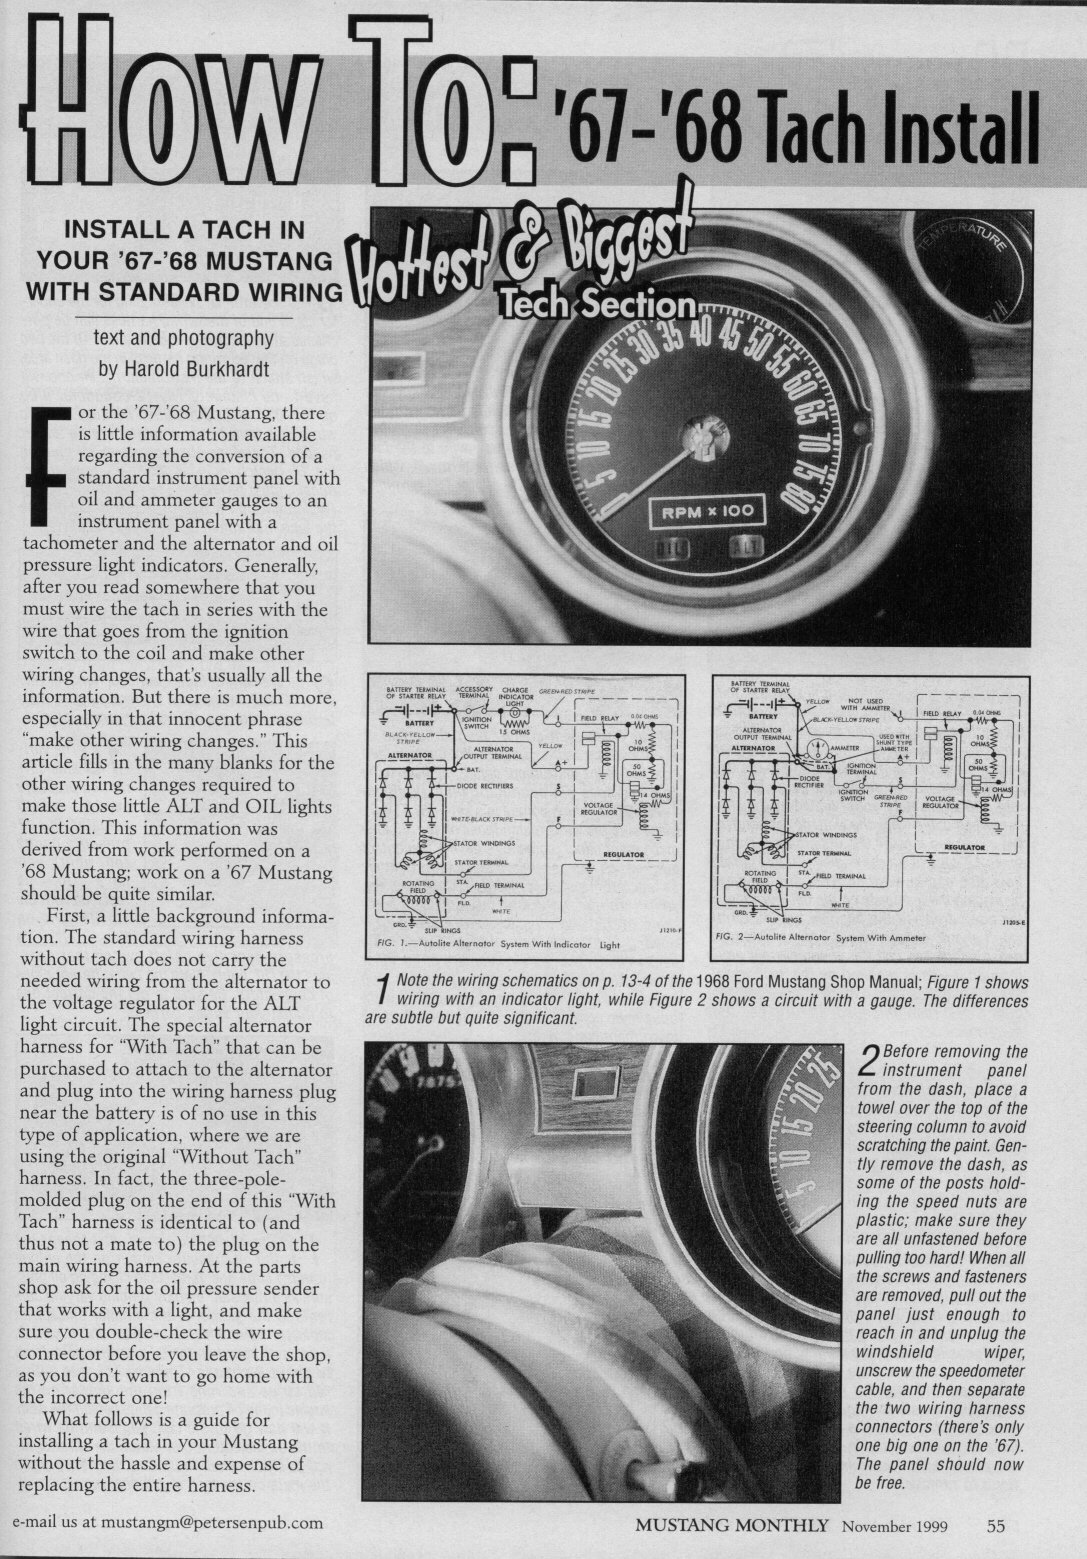 68 mustang tach wiring catalogue of schemas tachometer wiring diagram for 1968 ford